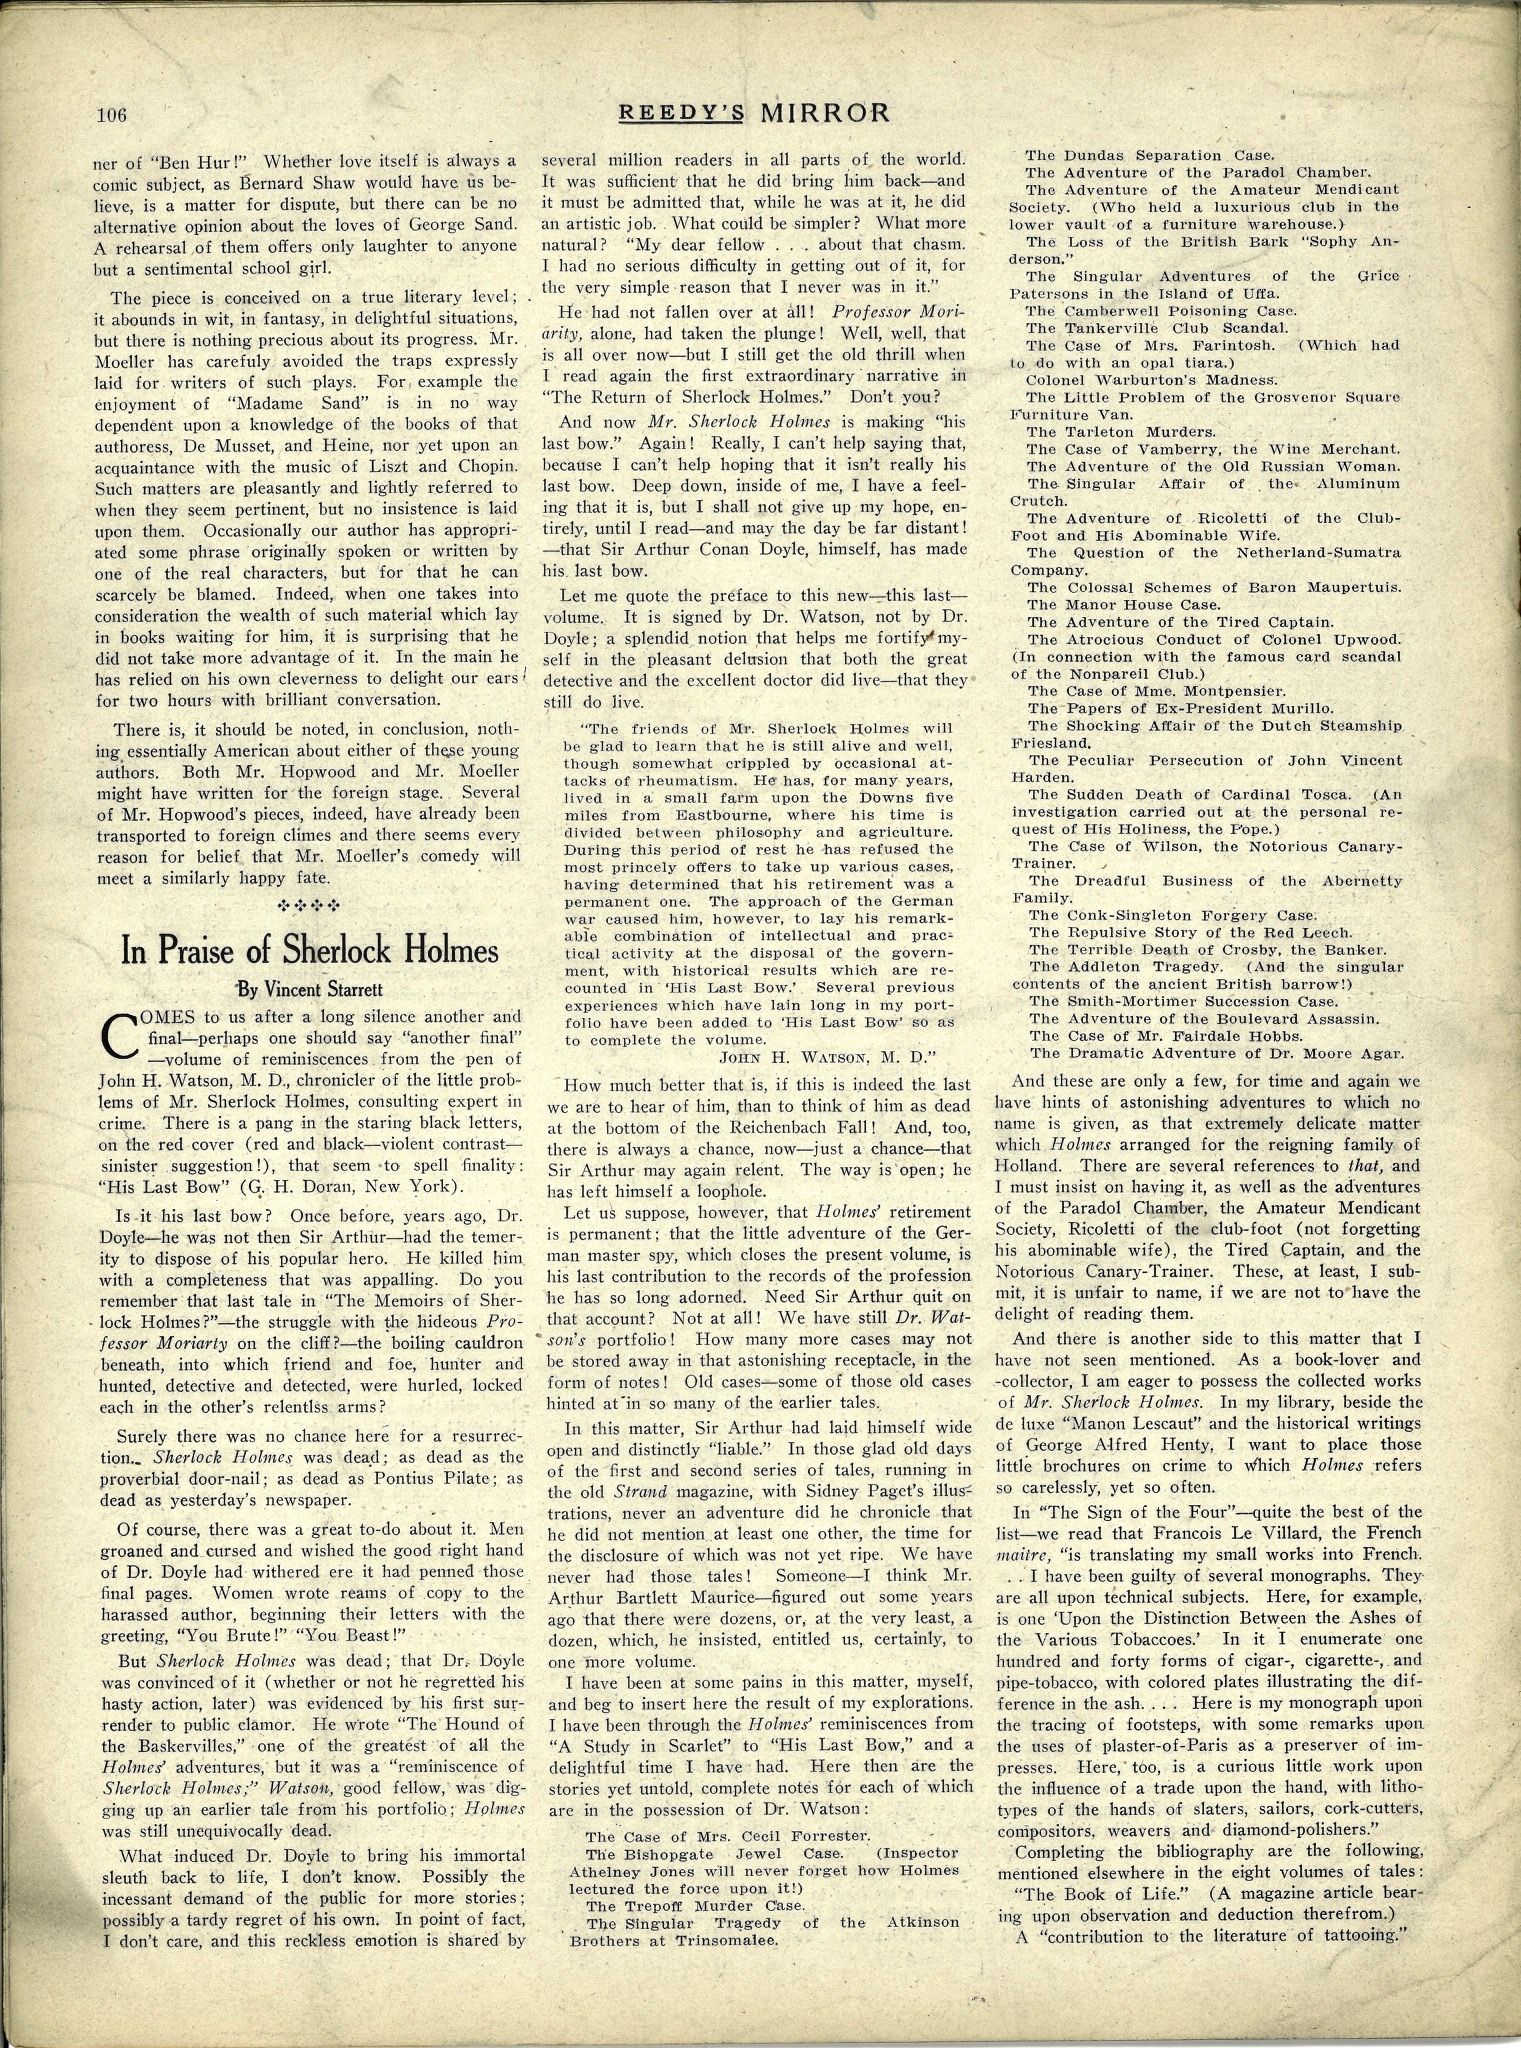 The first of two pages with Starrett's article on Holmes. It includes his list of all of the tales Watson alluded to, but had yet to write.